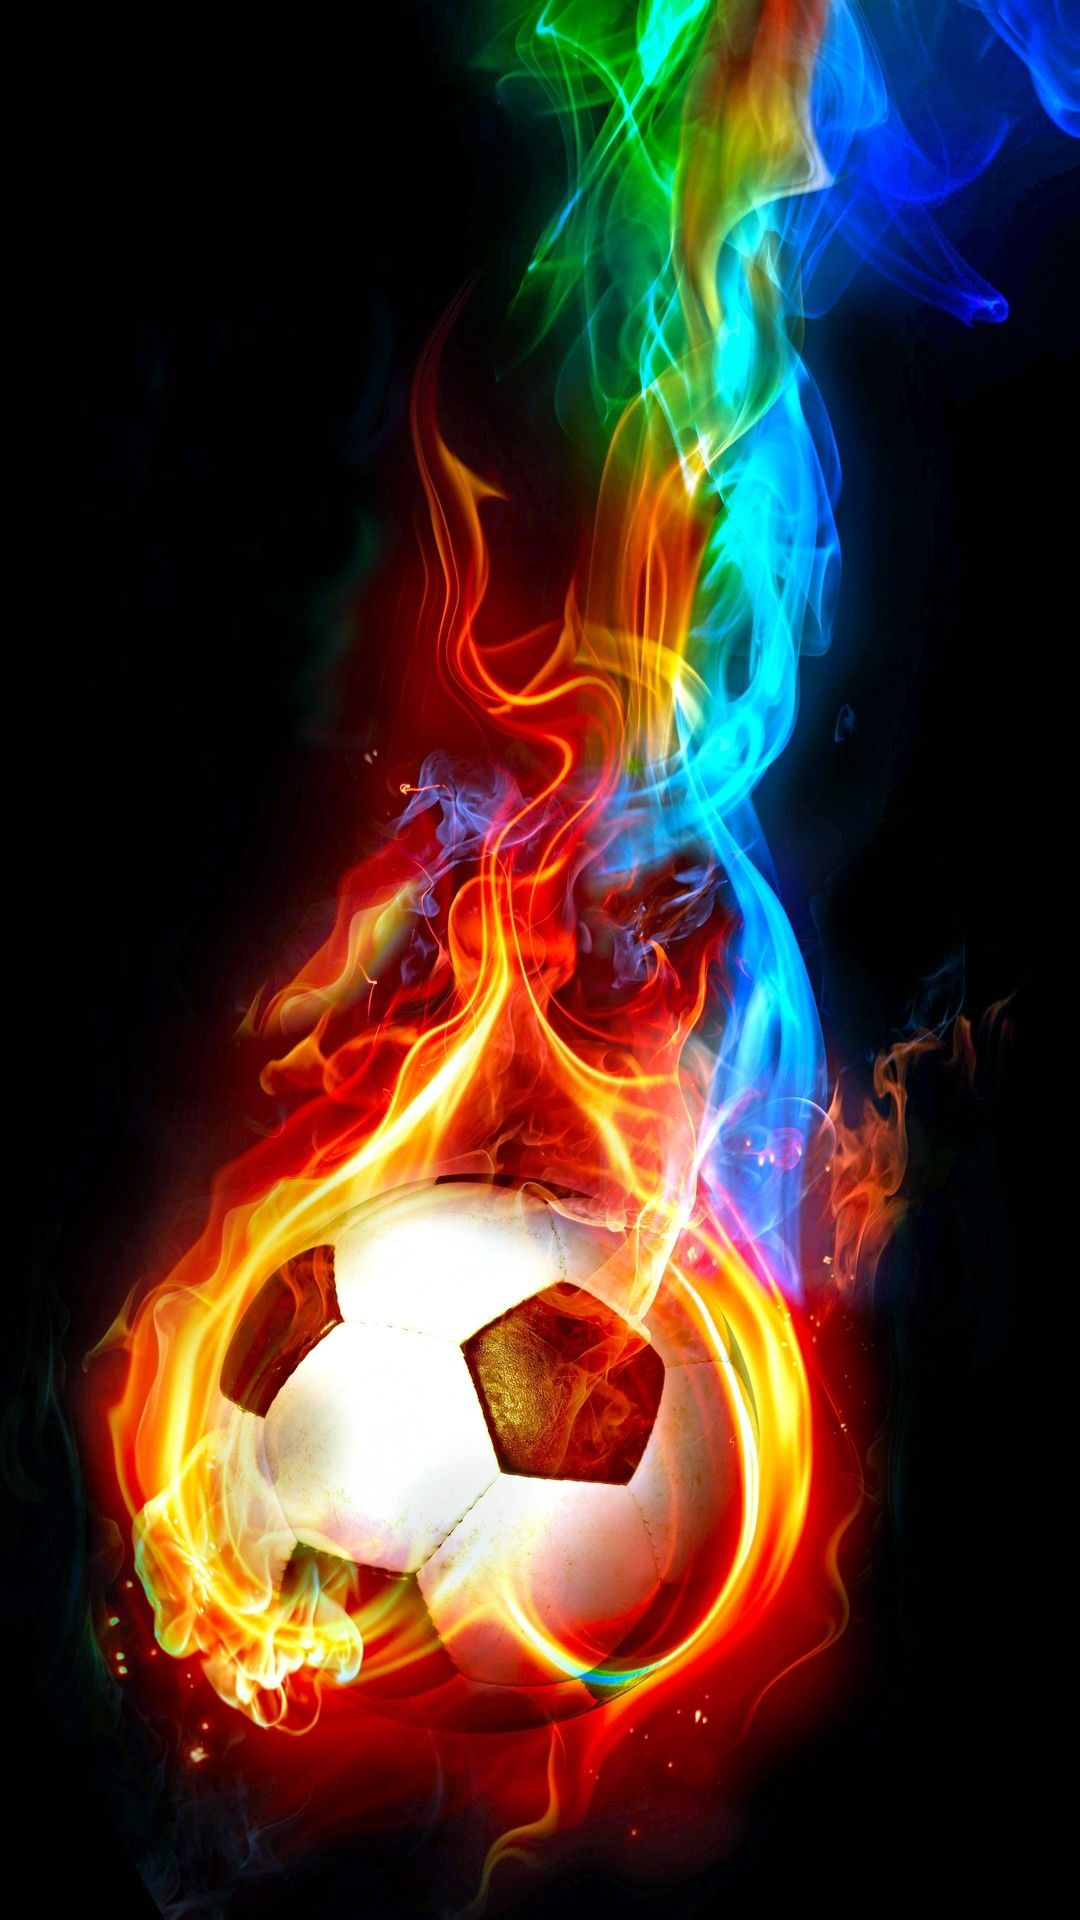 Cool Soccer Pics : soccer, Soccer, Wallpapers, Backgrounds, WallpaperAccess